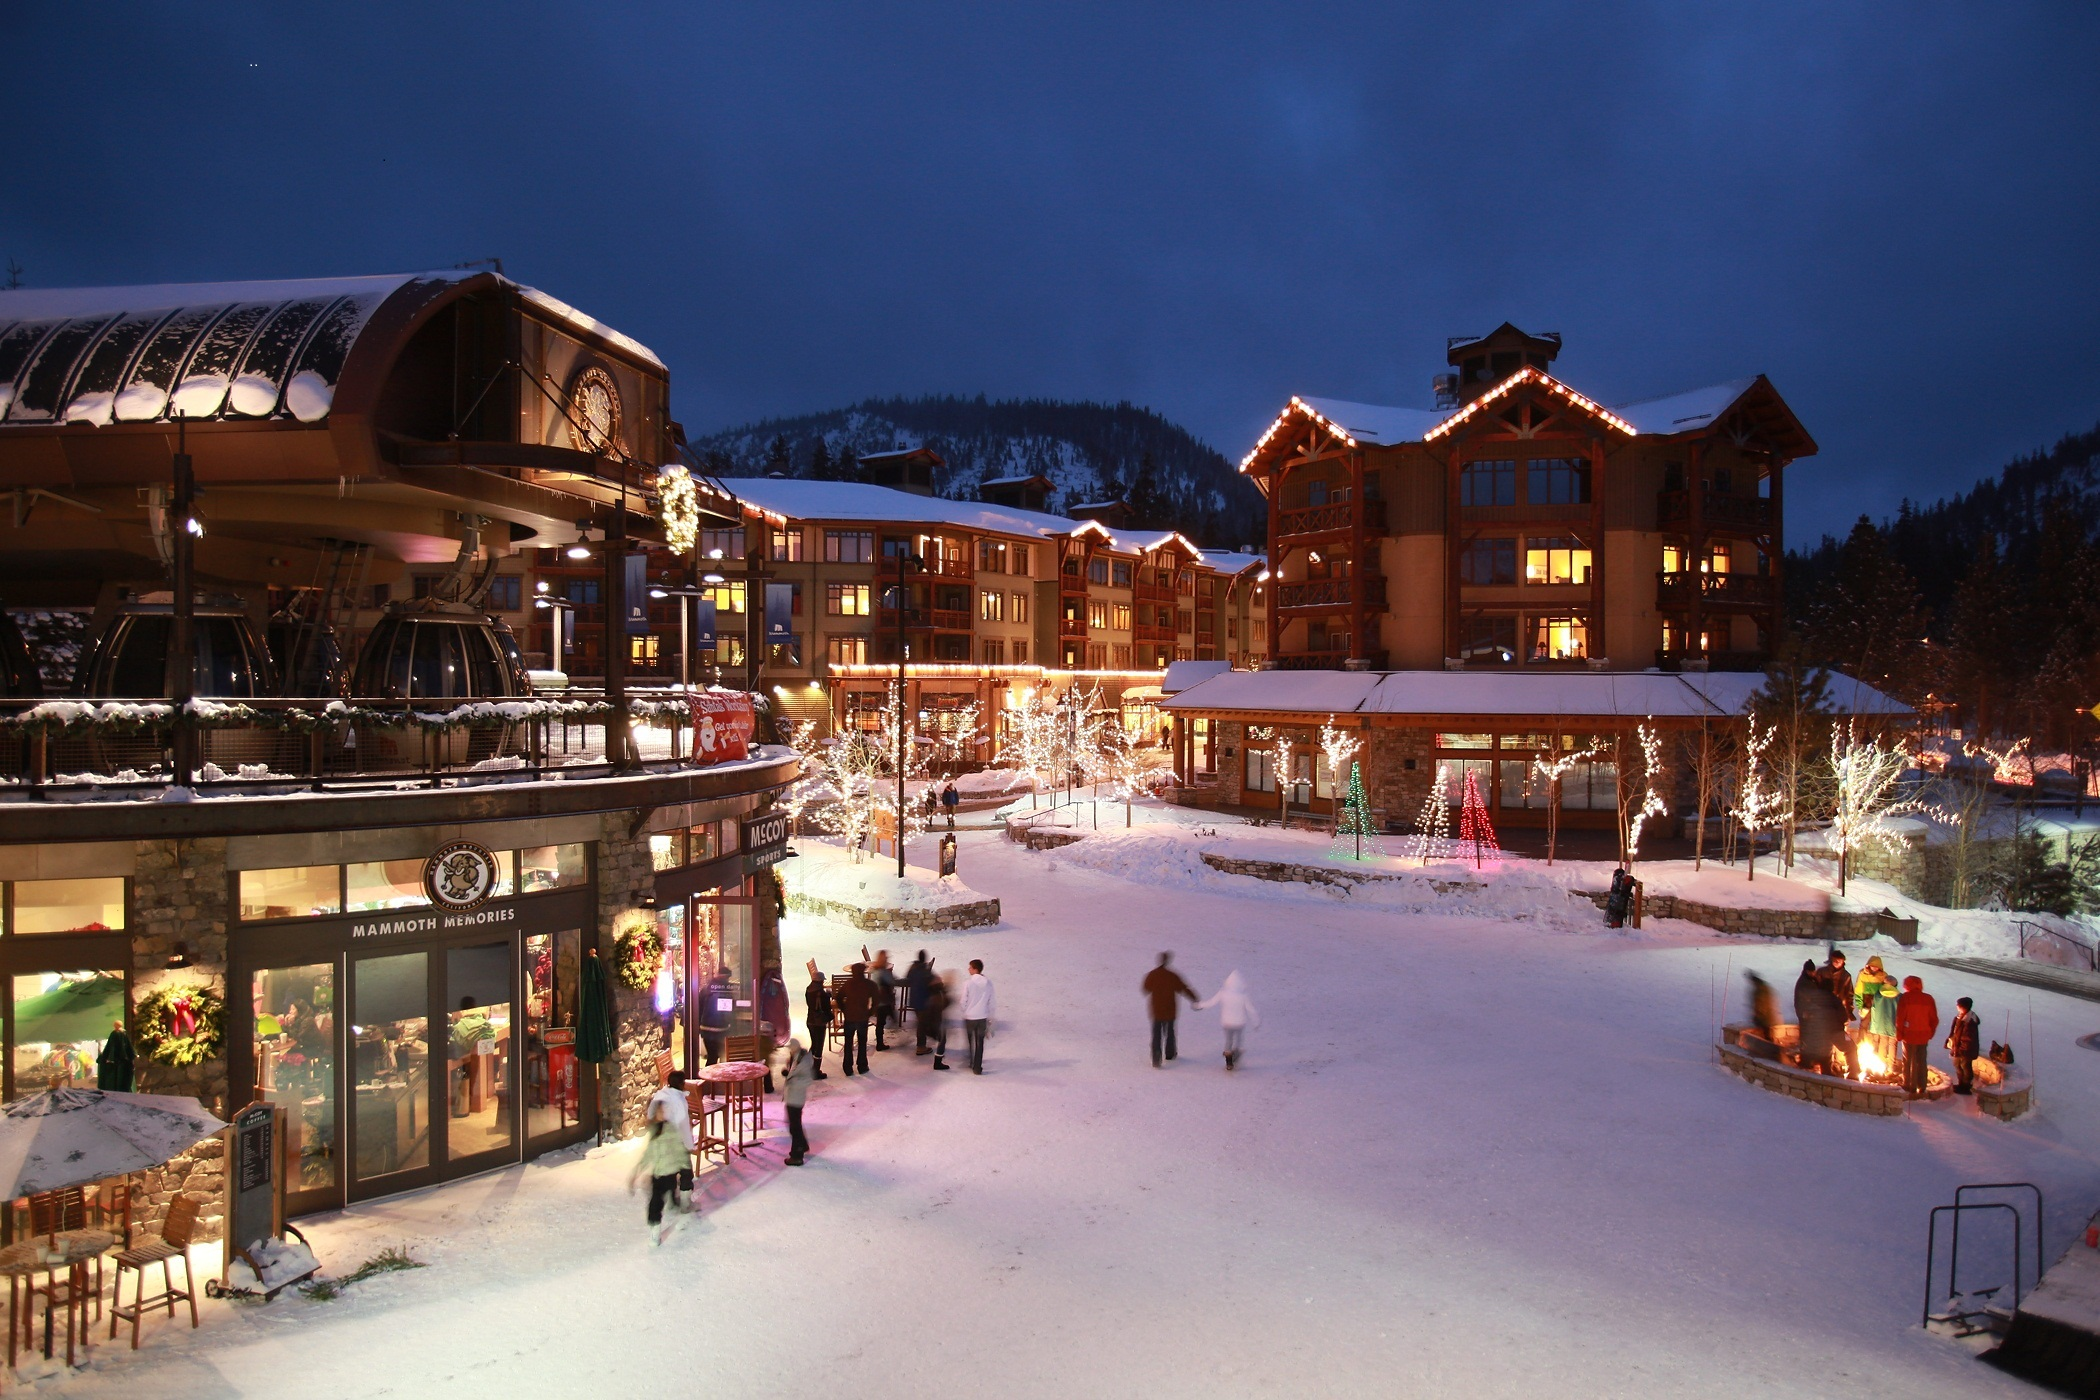 Village at Mammoth offers many amenities for a great family ski vacation. Photo courtesy of Mammoth Mountain